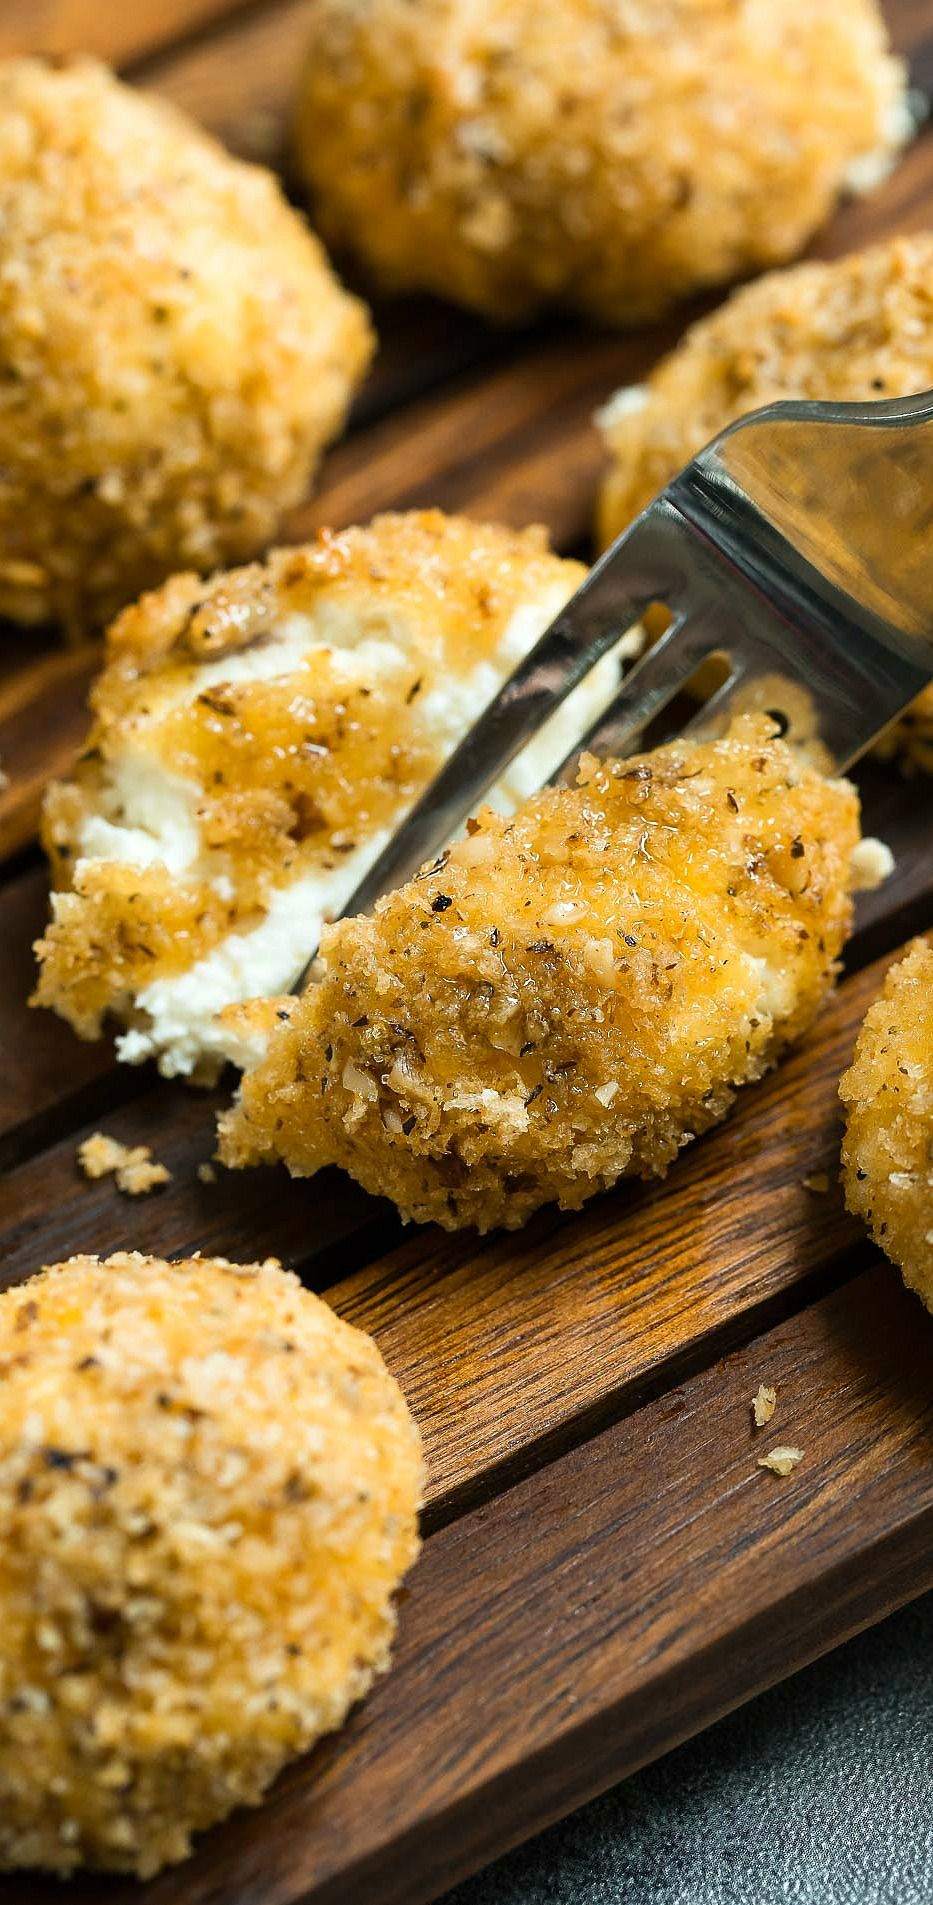 LOVING these walnut panko baked goat cheese balls! These honey drizzled crispy goat cheese bites are baked instead of fried and make a fabulous appetizer or salad topping and are the star of any cheese or charcuterie board!